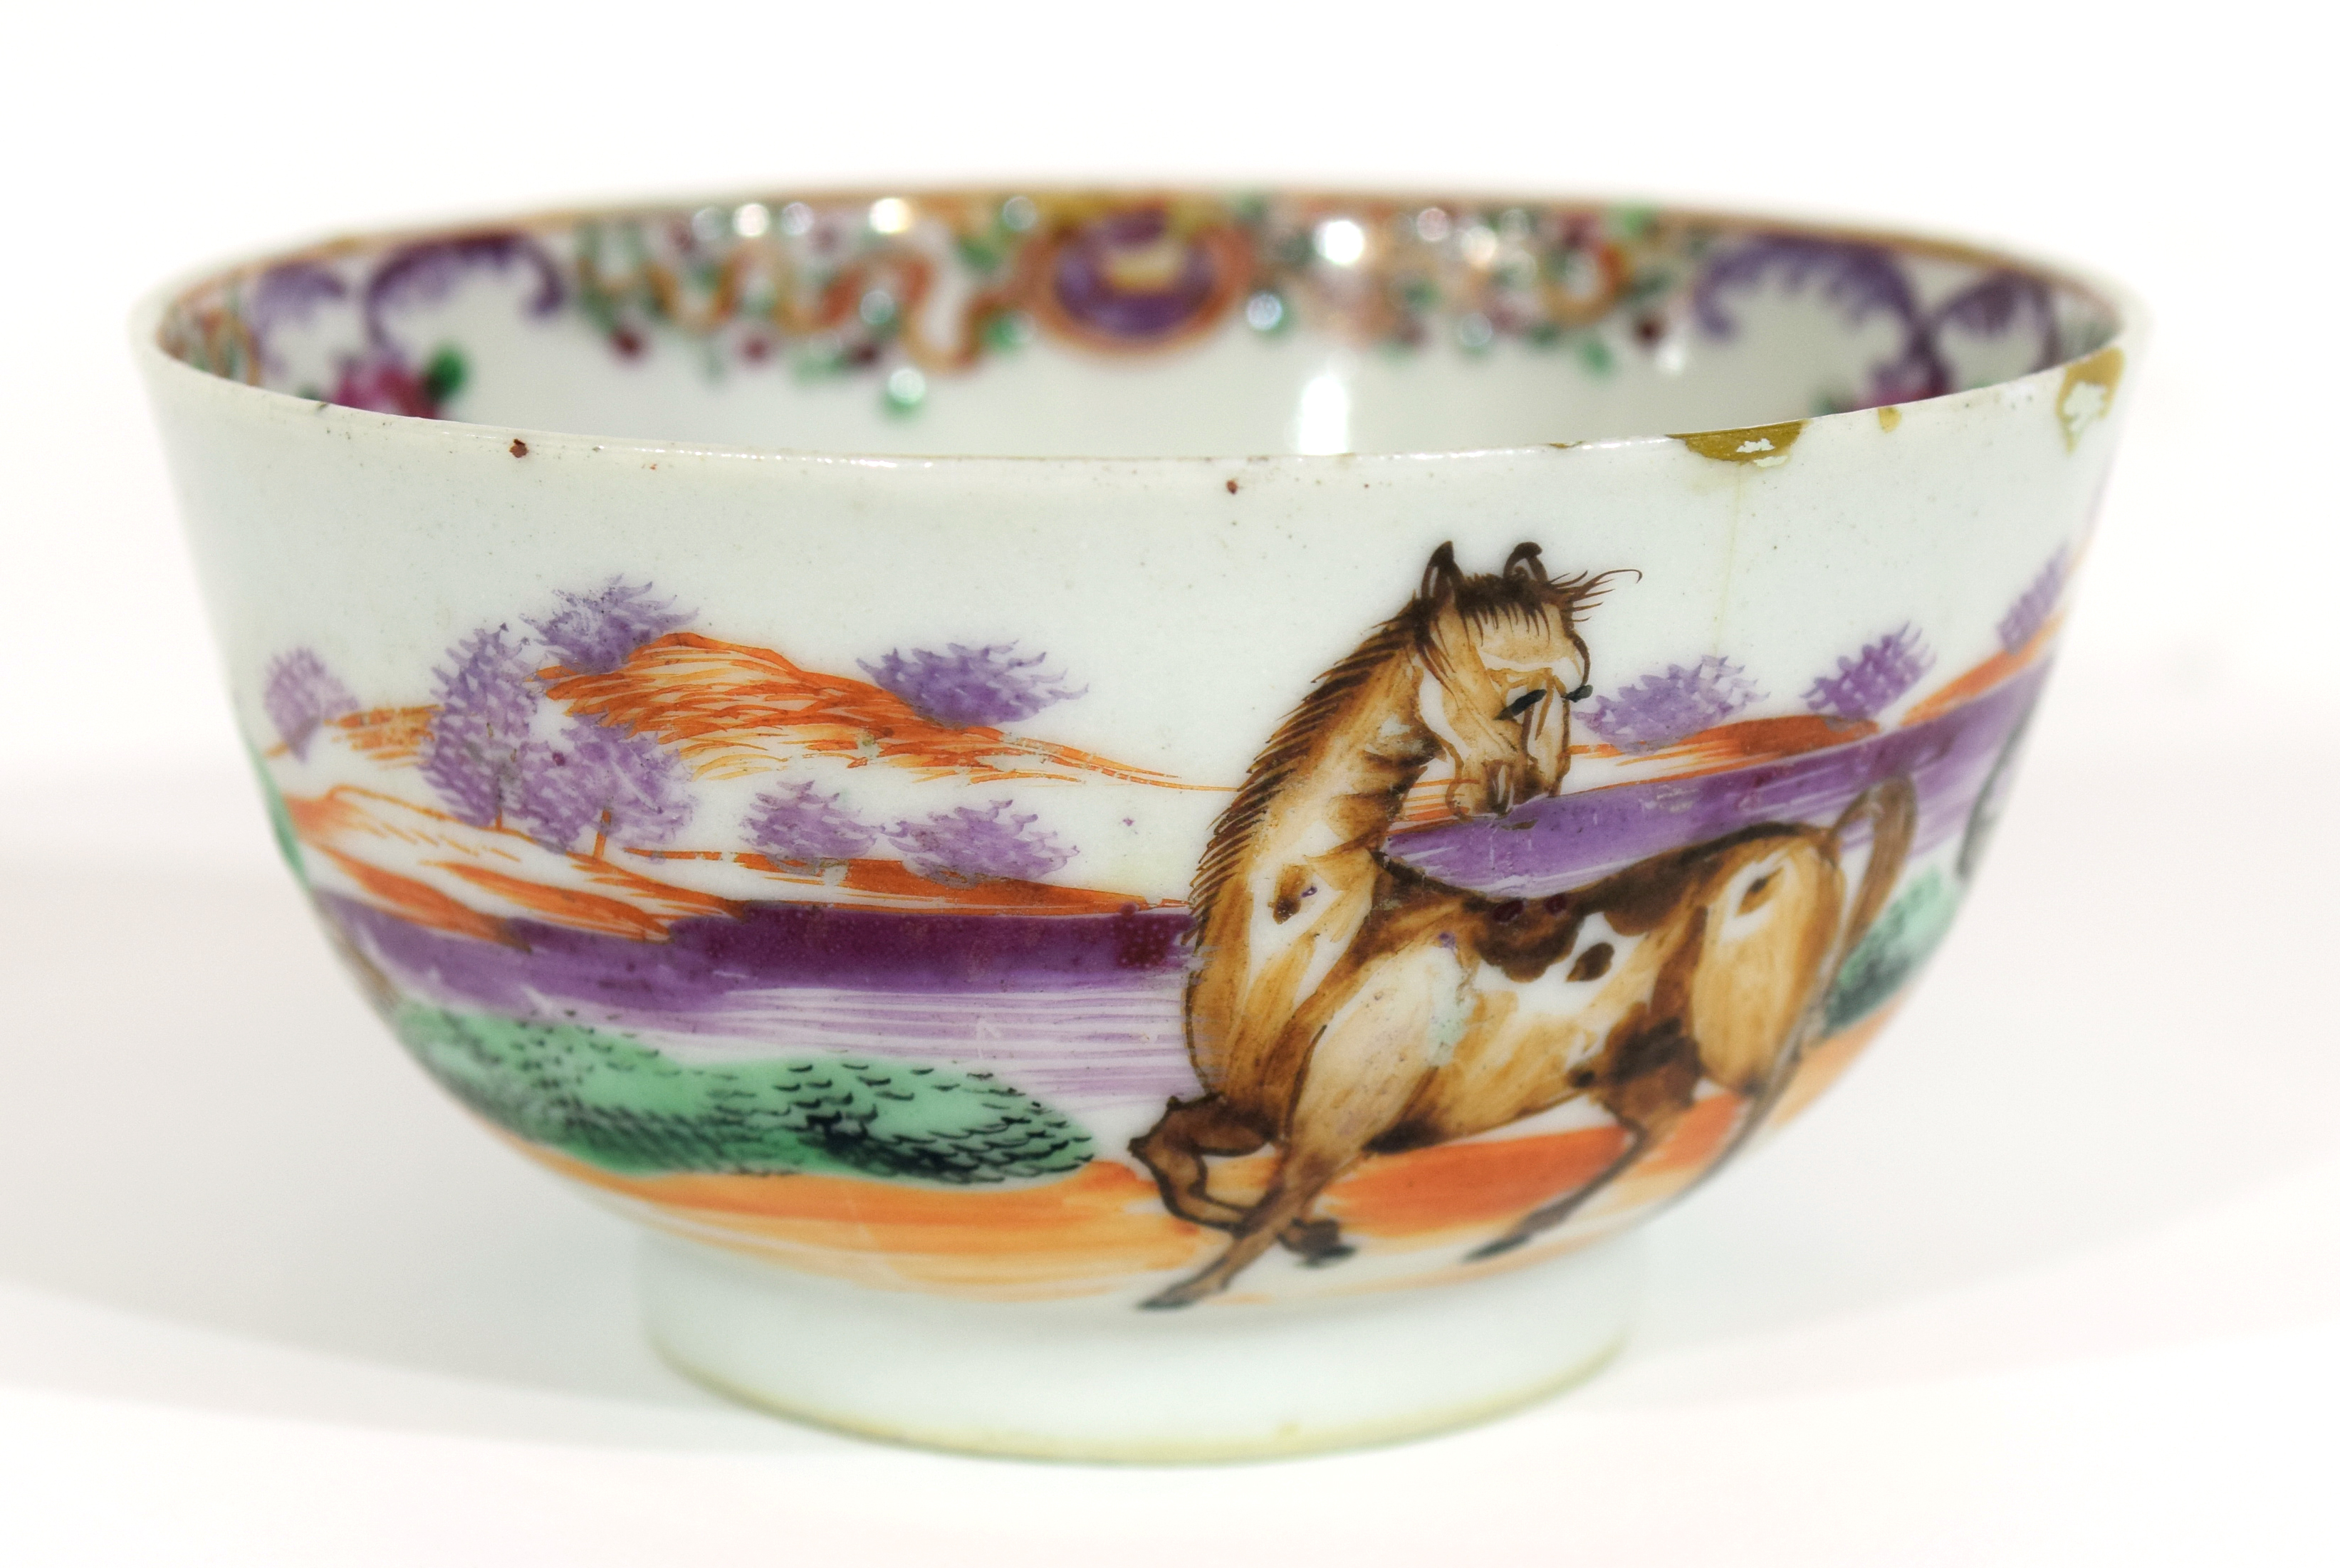 Small Chinese bowl, 18th century